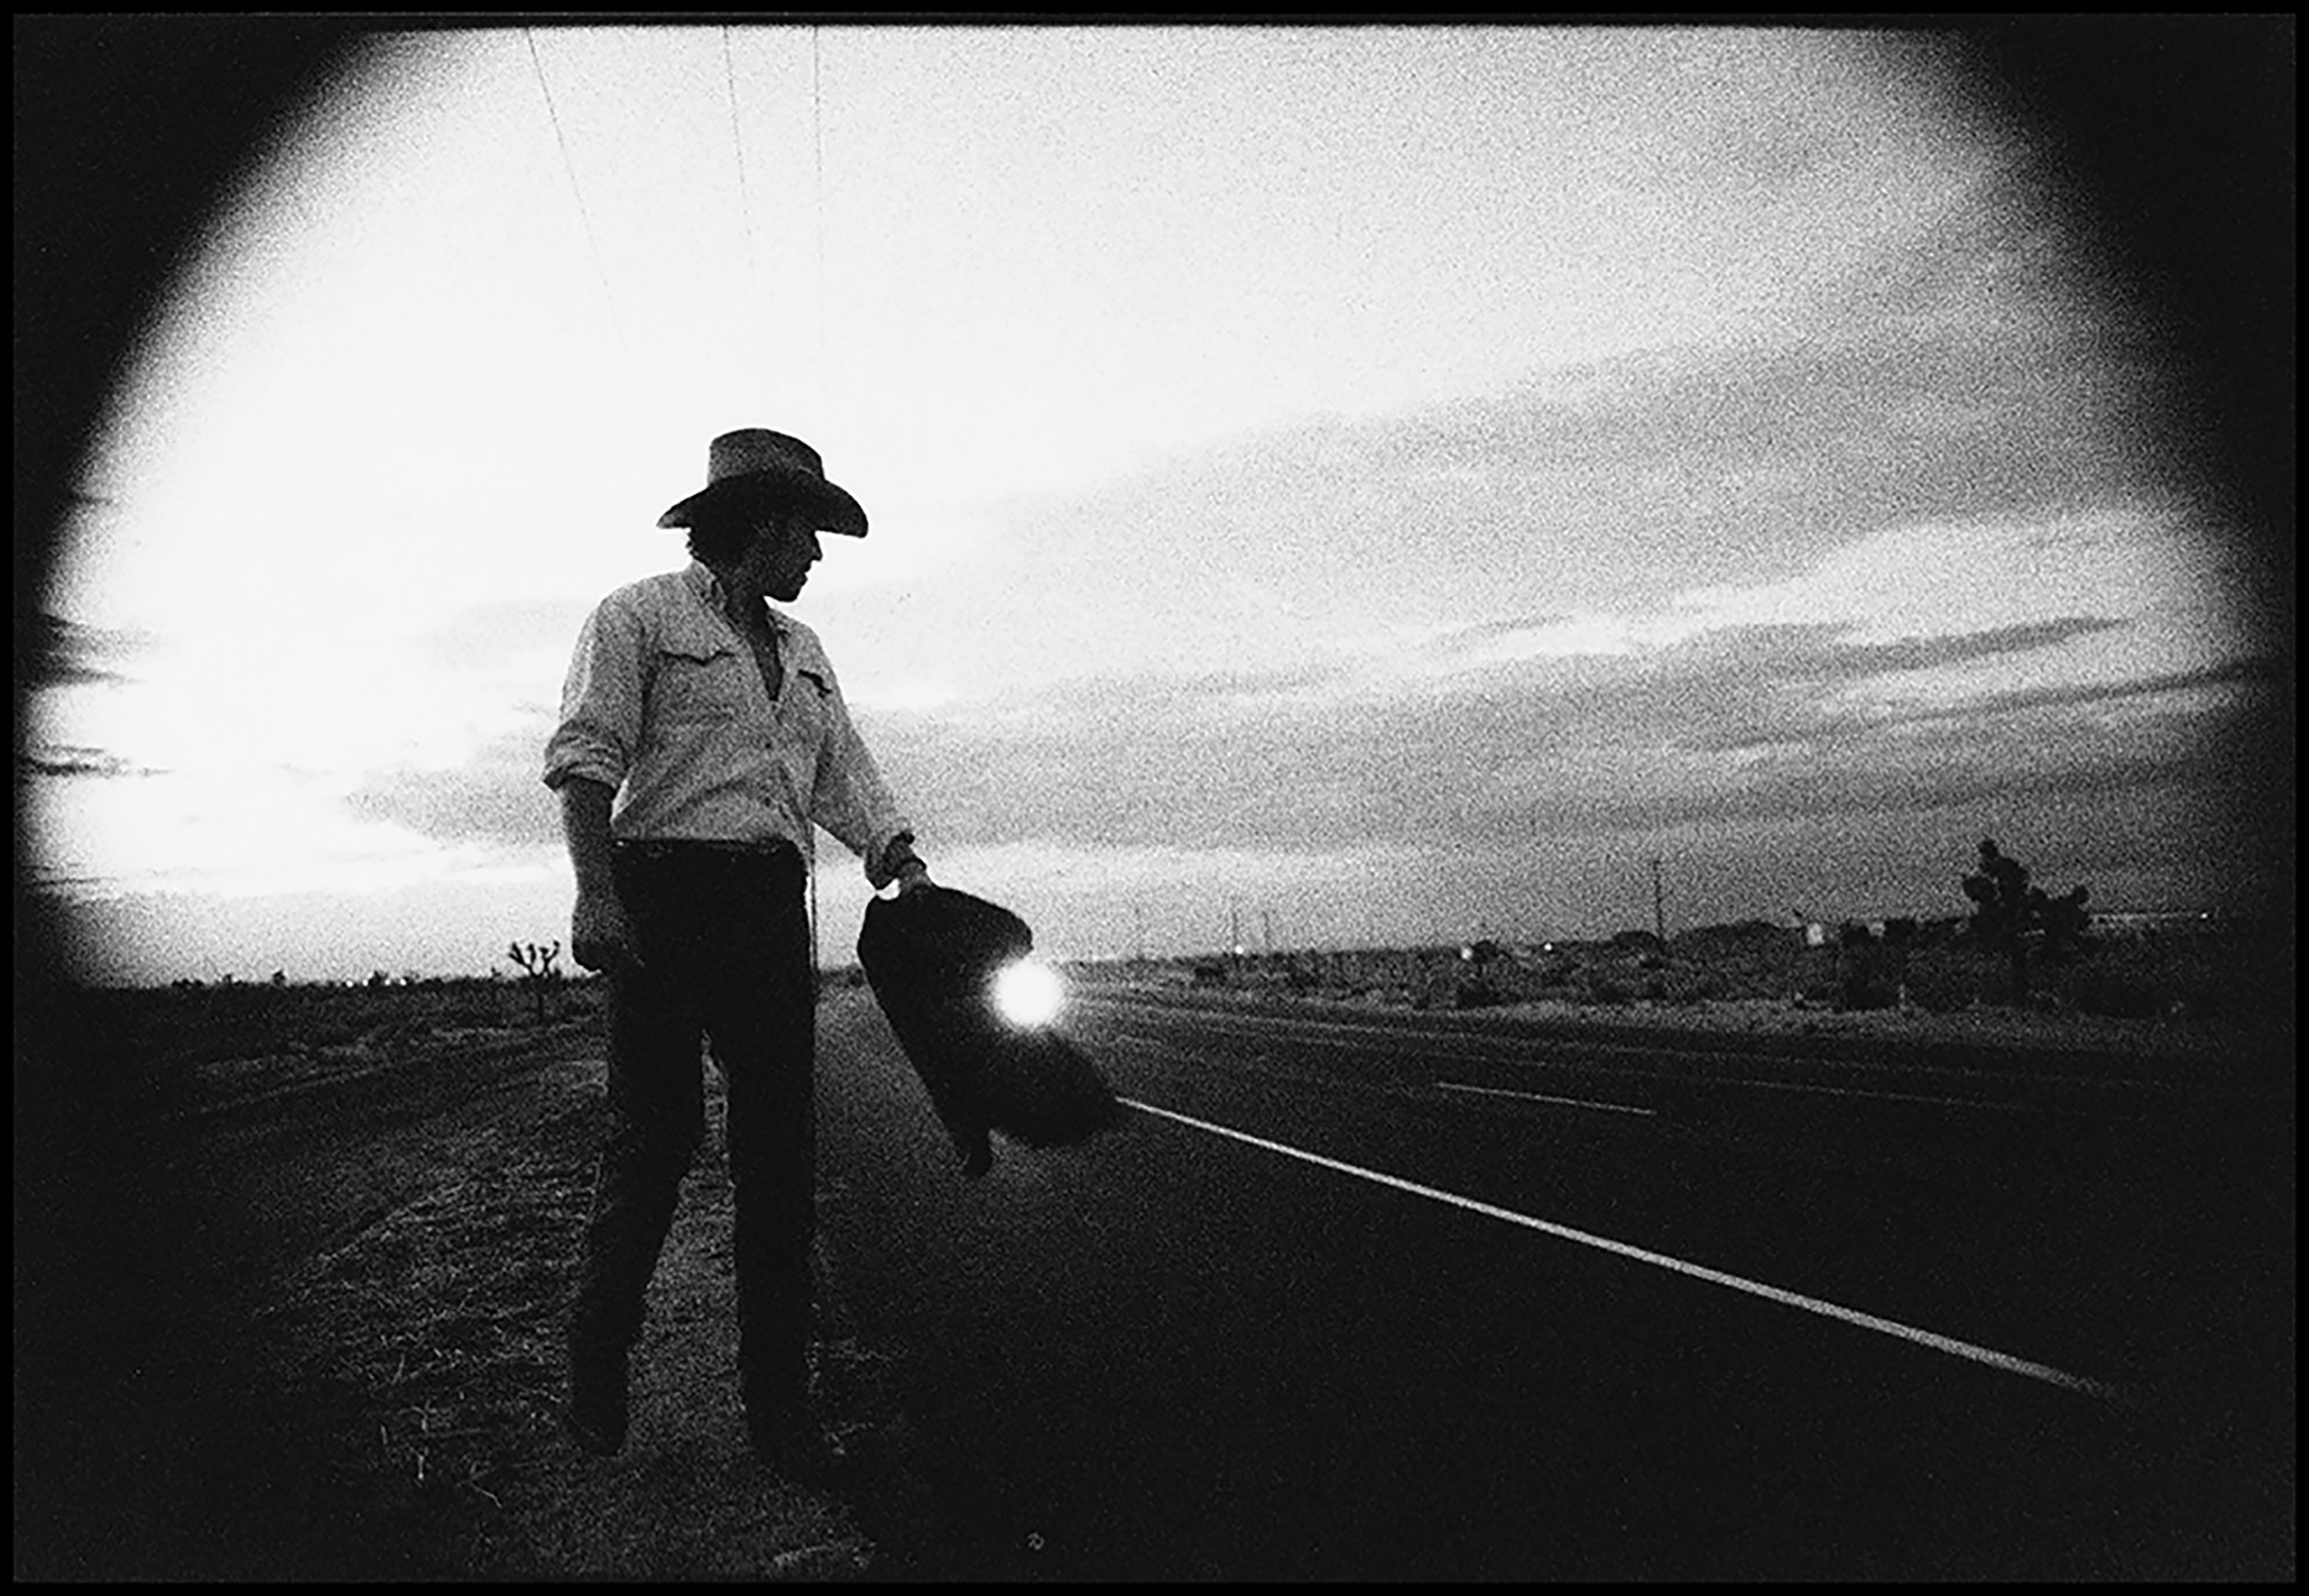 Bruce on Highway Must include Photo Credit Pamela Springsteen - small_80%1.jpg